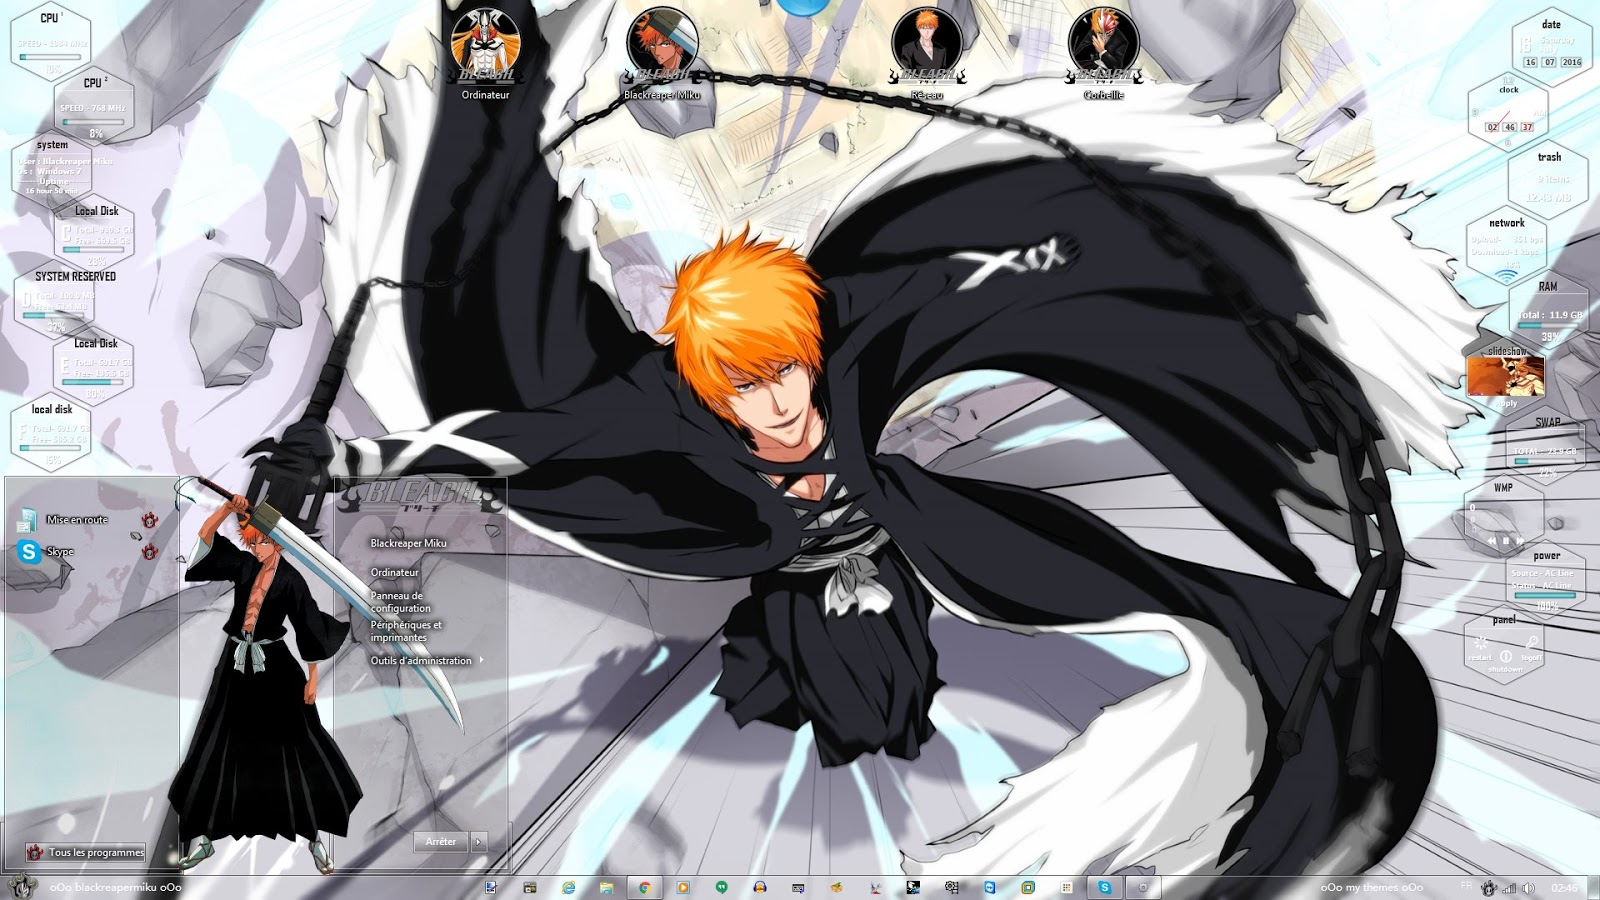 Google themes bleach - Hello Everybody Today I Make An New Version From The Bleach Theme I Hope You Like It This Way